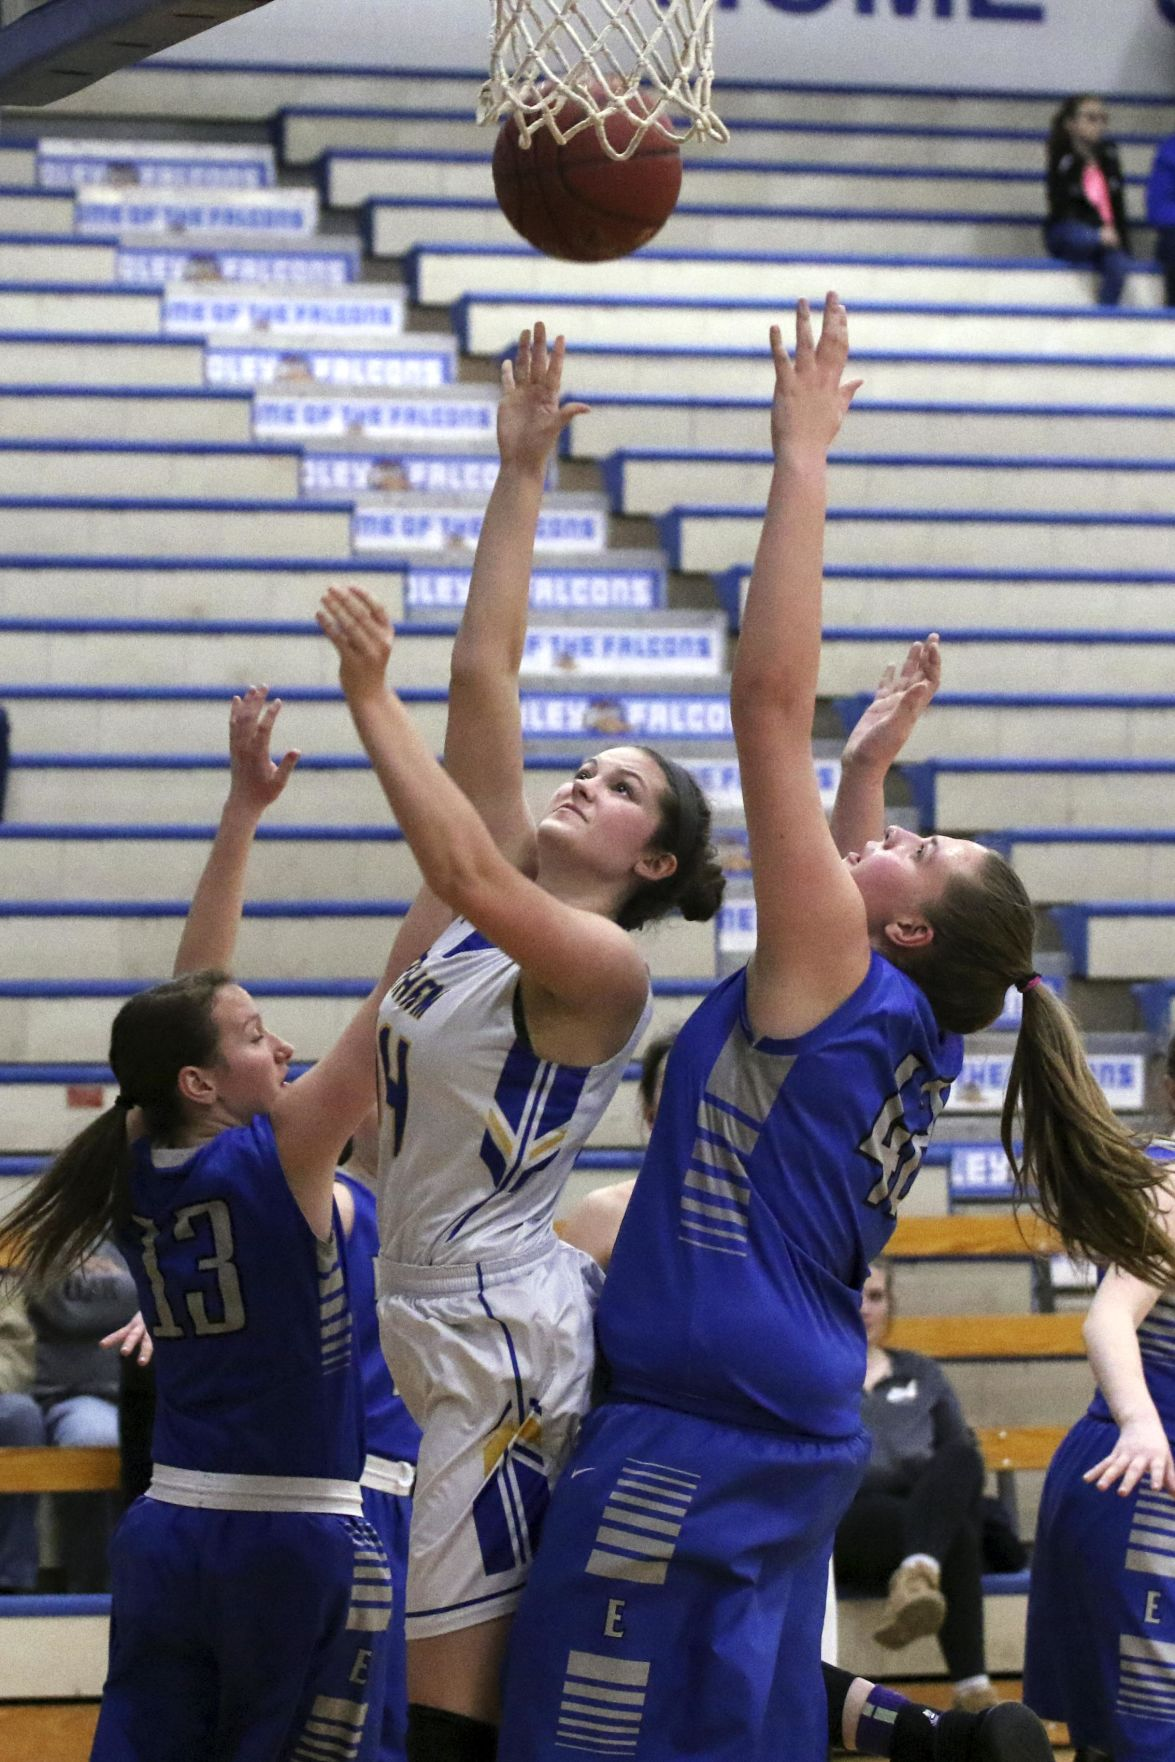 Bomber girls basketball one-and-one and done